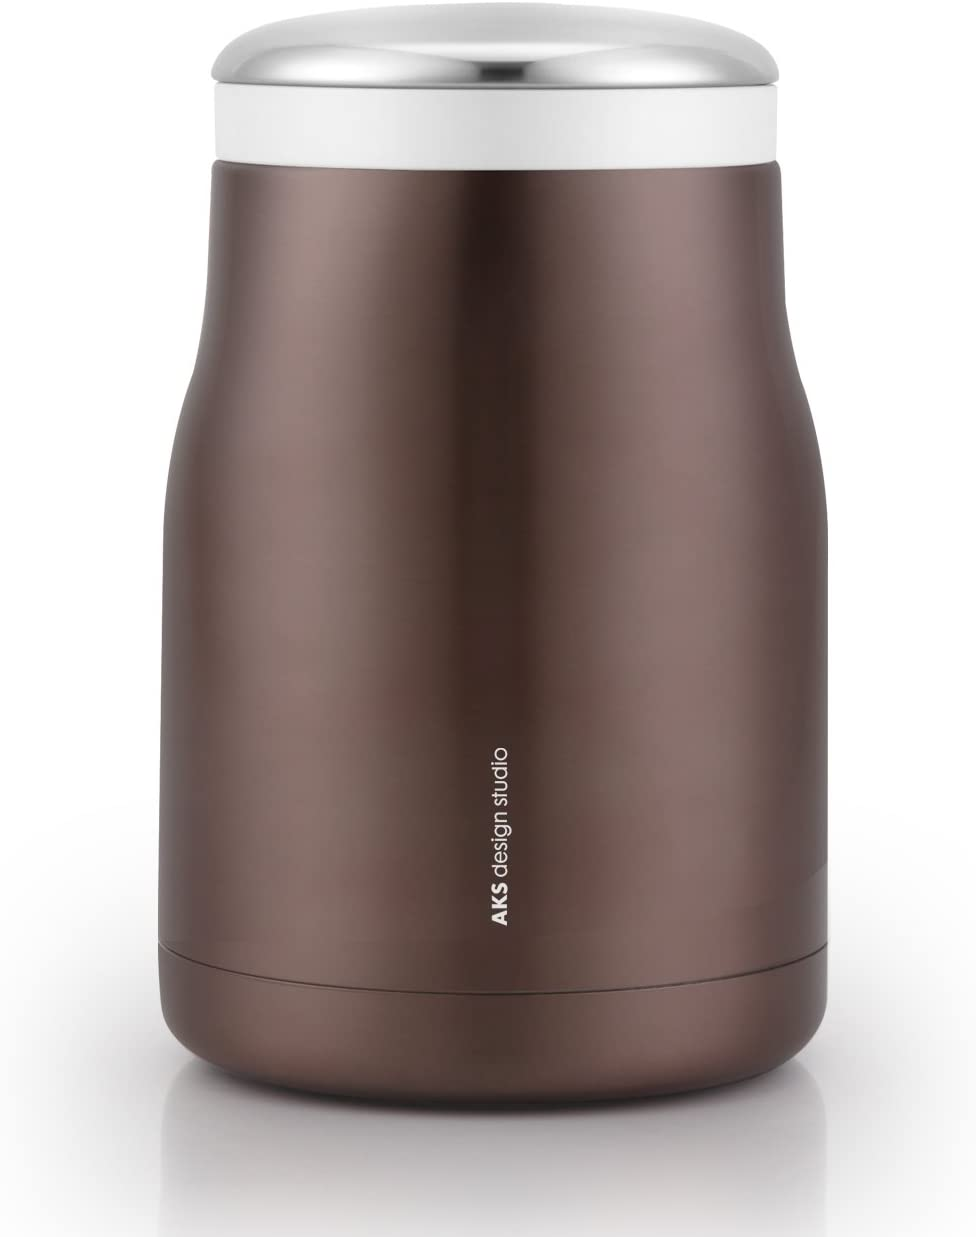 AKS Vacuum Insulated Stainless Steel Food Jar Soup Thermos, 16 Oz with a carrying bag (Brown)